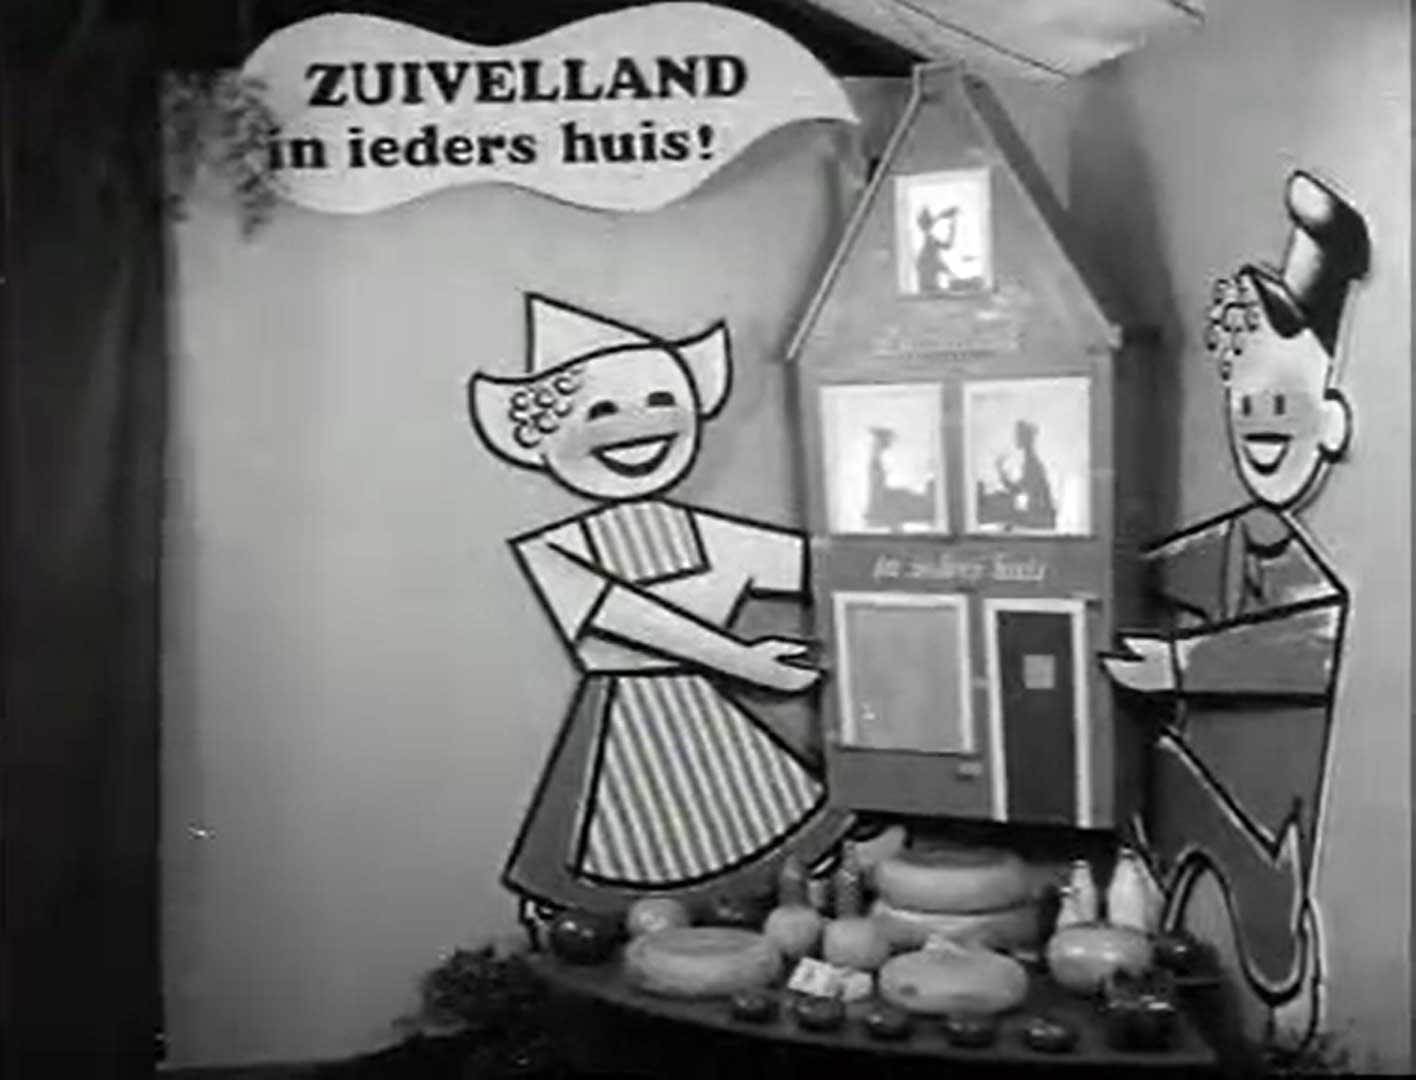 Zuivelland - the making of A Dream Comes true (1955)